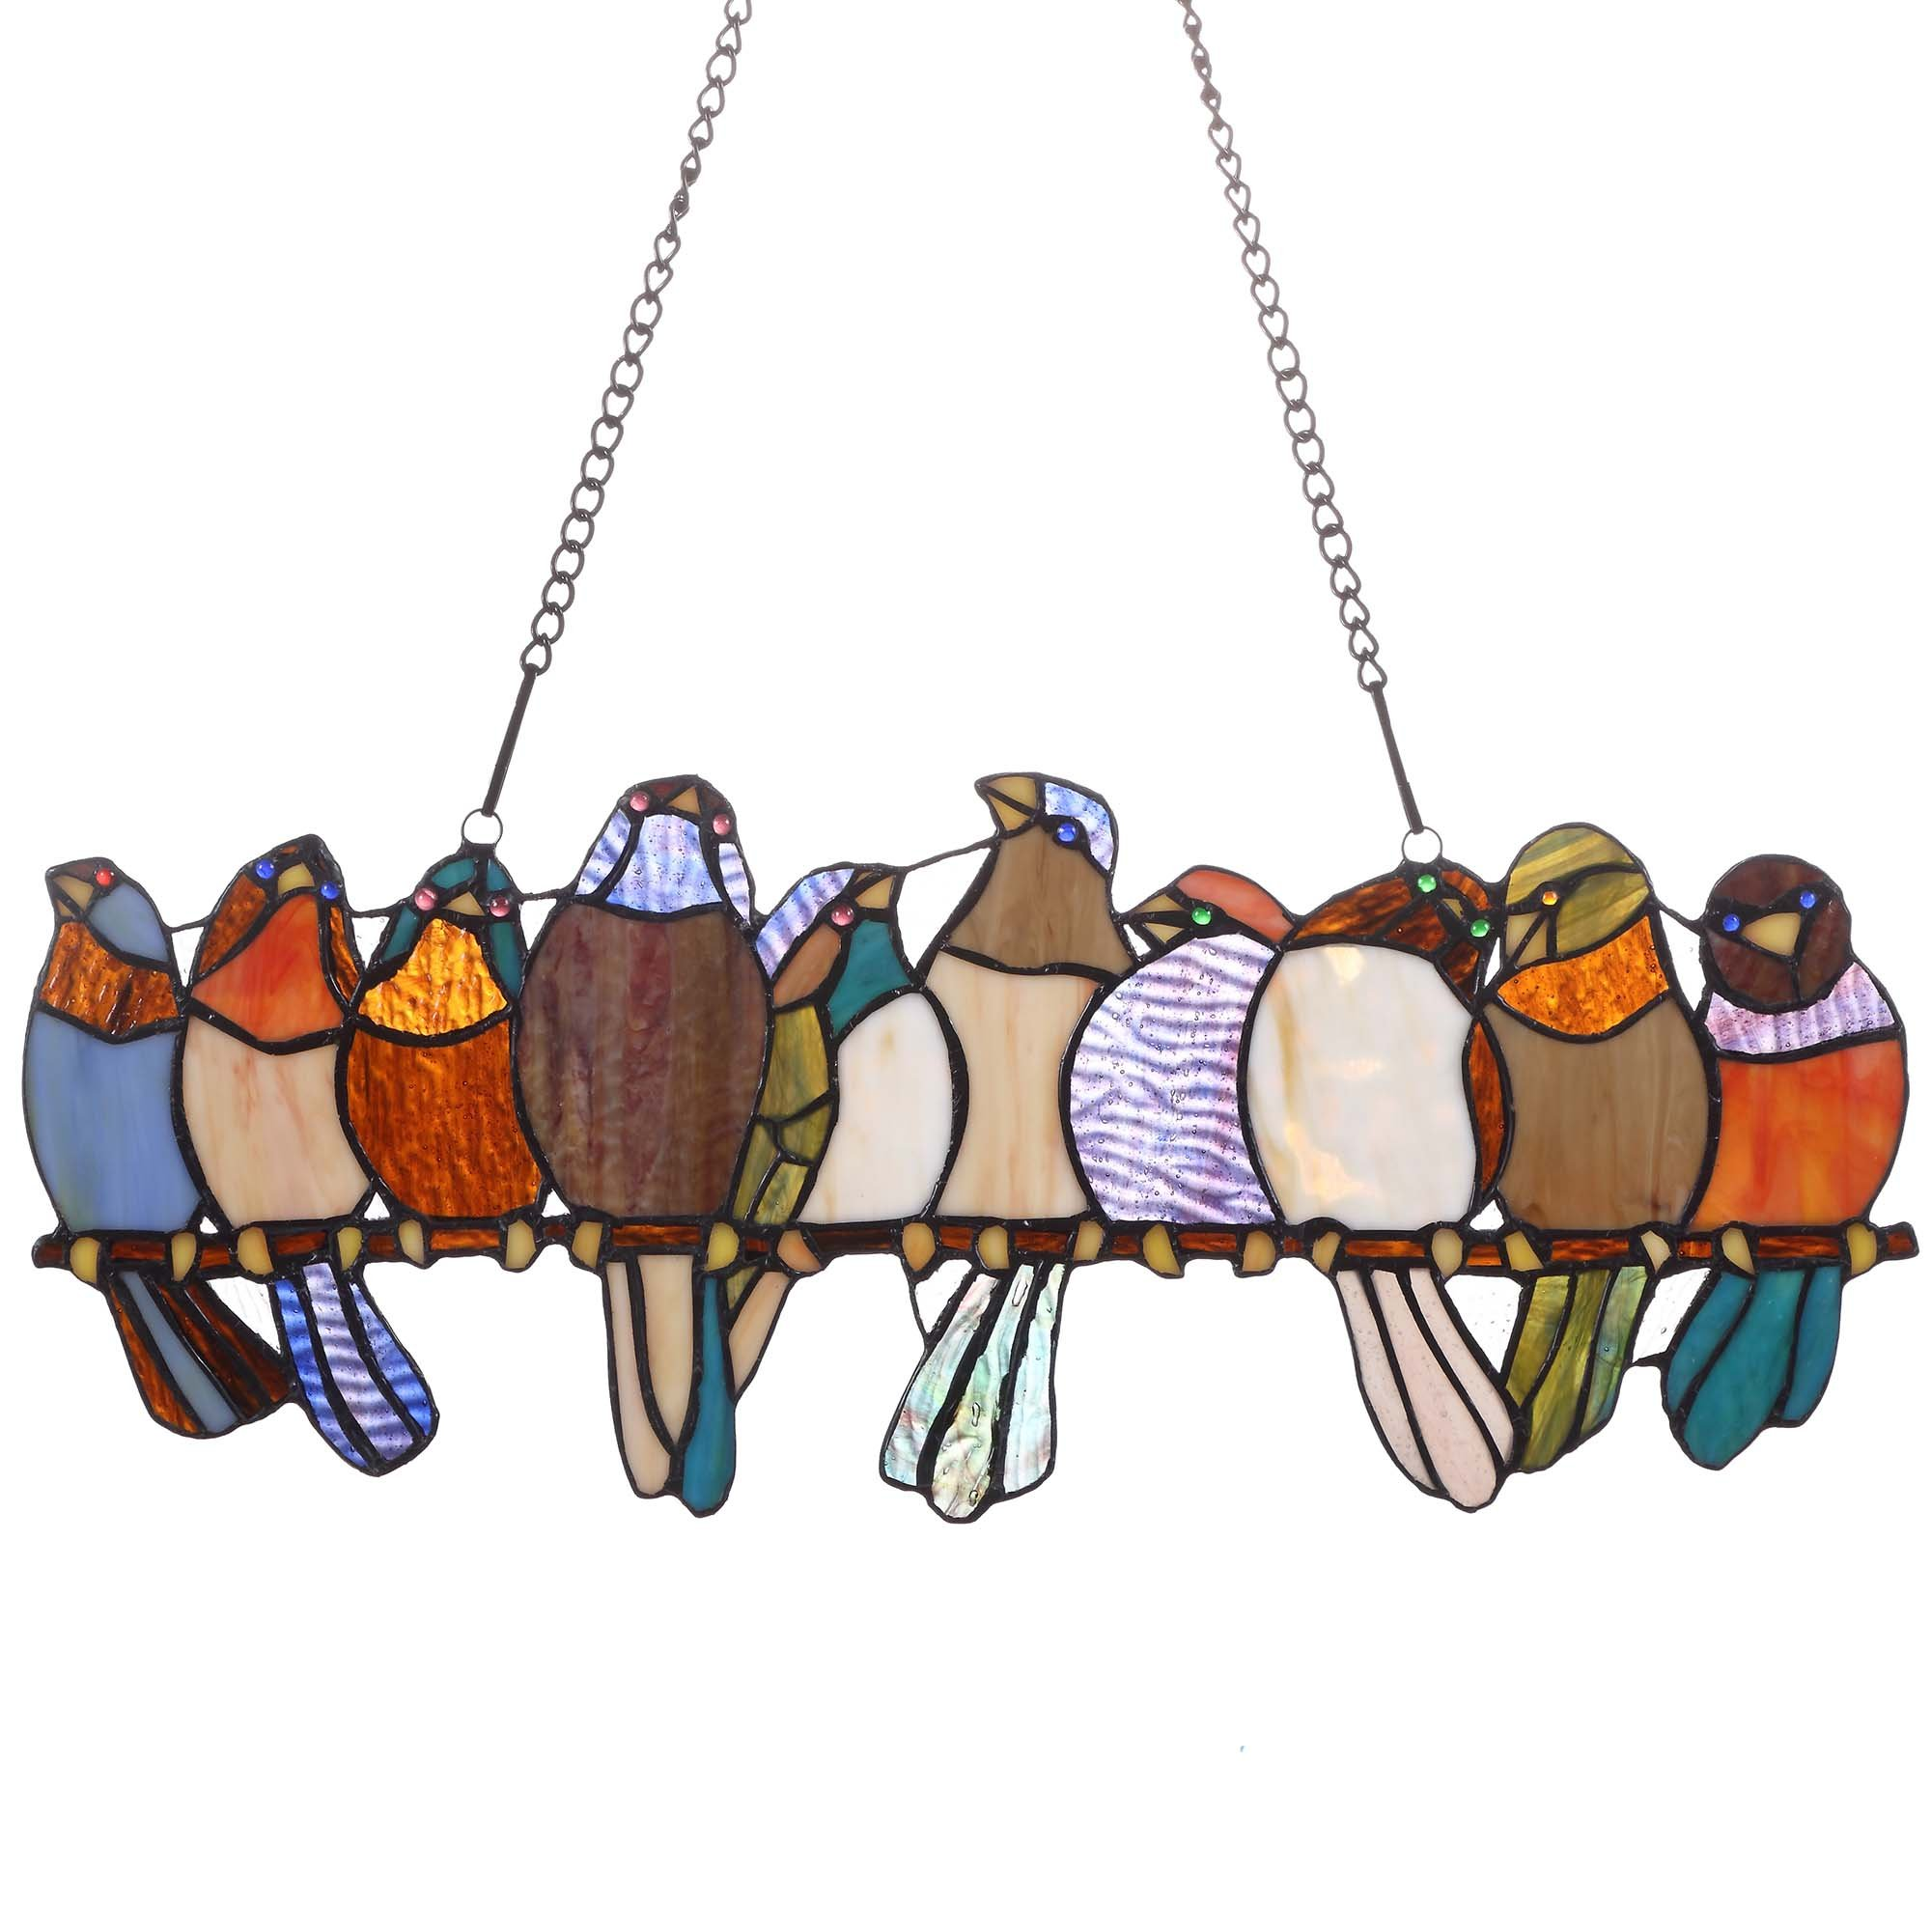 Bieye W10002 19-inches Tropical Birds Tiffany Style Stained Glass Window Panel with Hanging Chain (10 Birds)